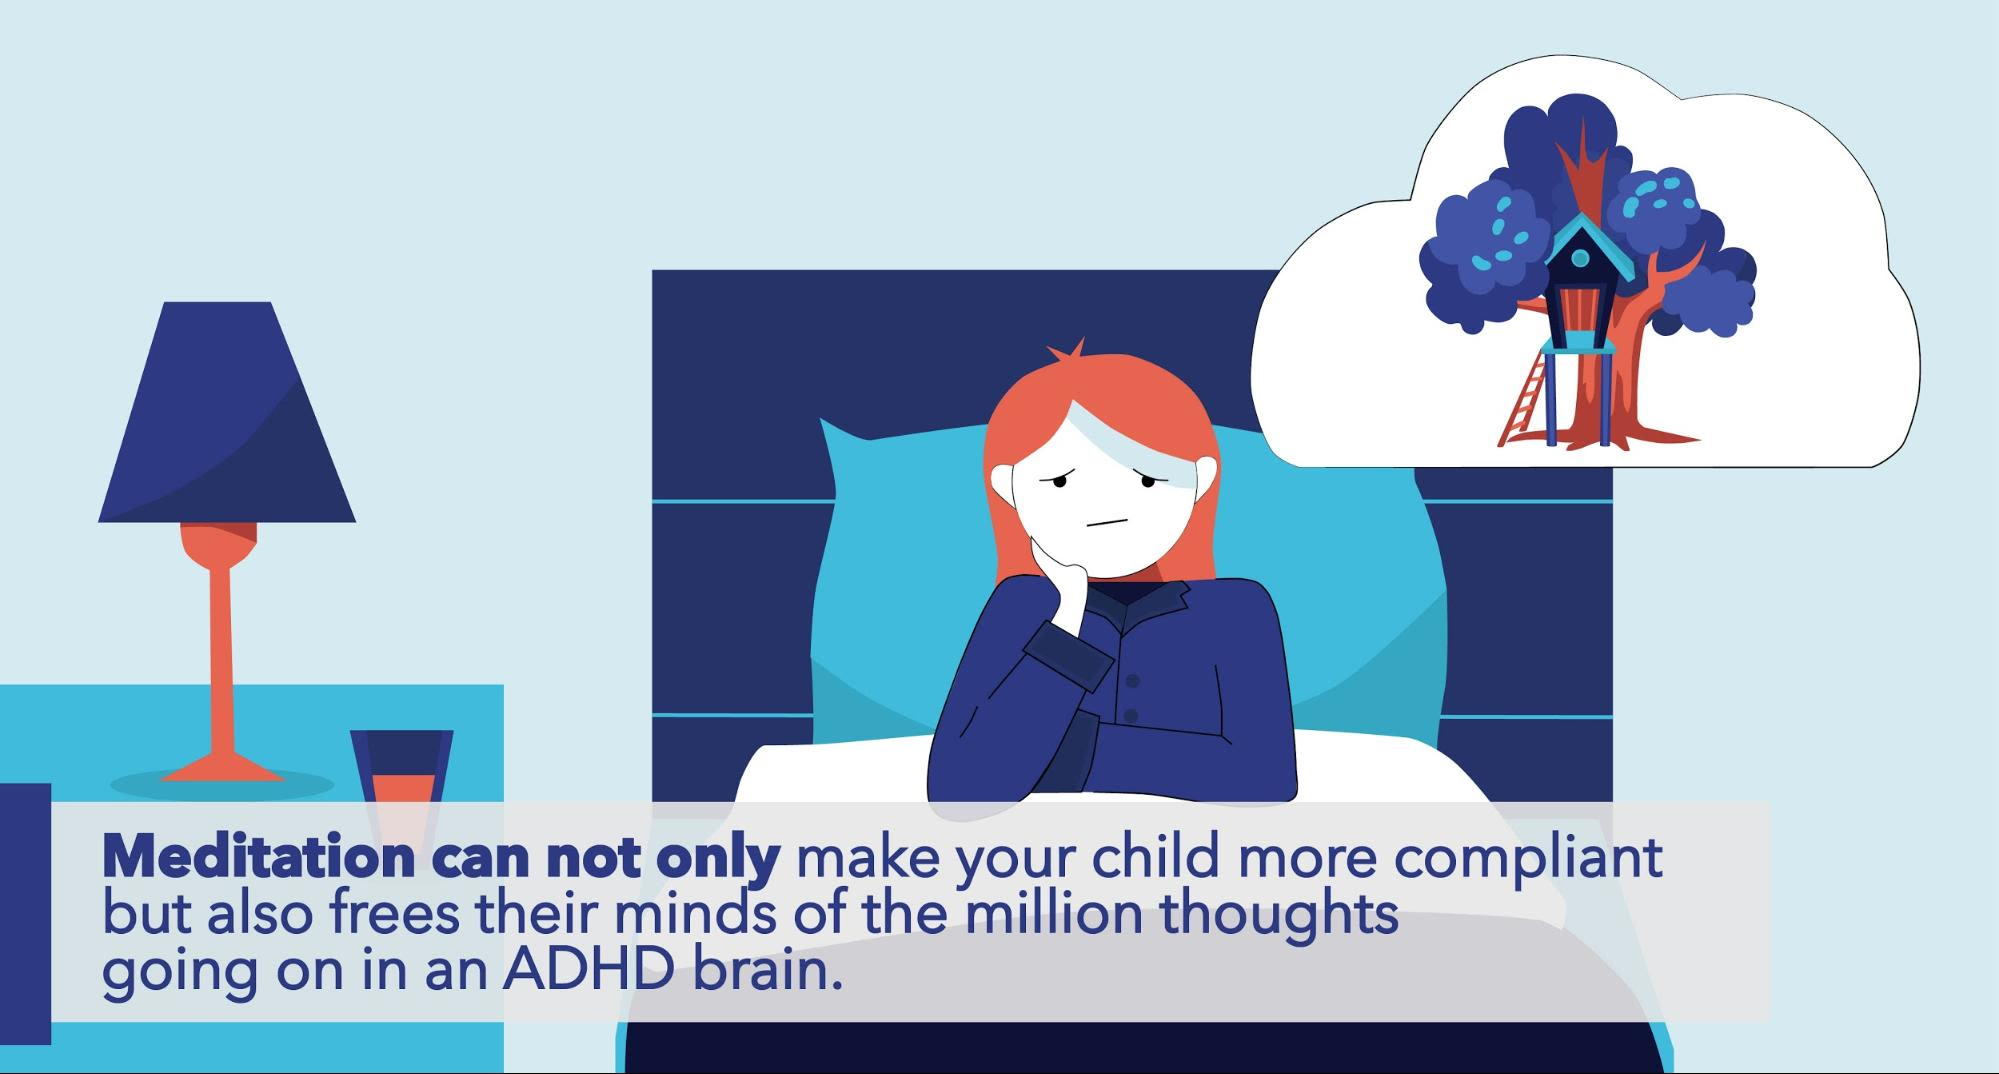 Meditation can not only make your child more compliant but also frees their minds of the million thoughts going on in an ADHD brain.